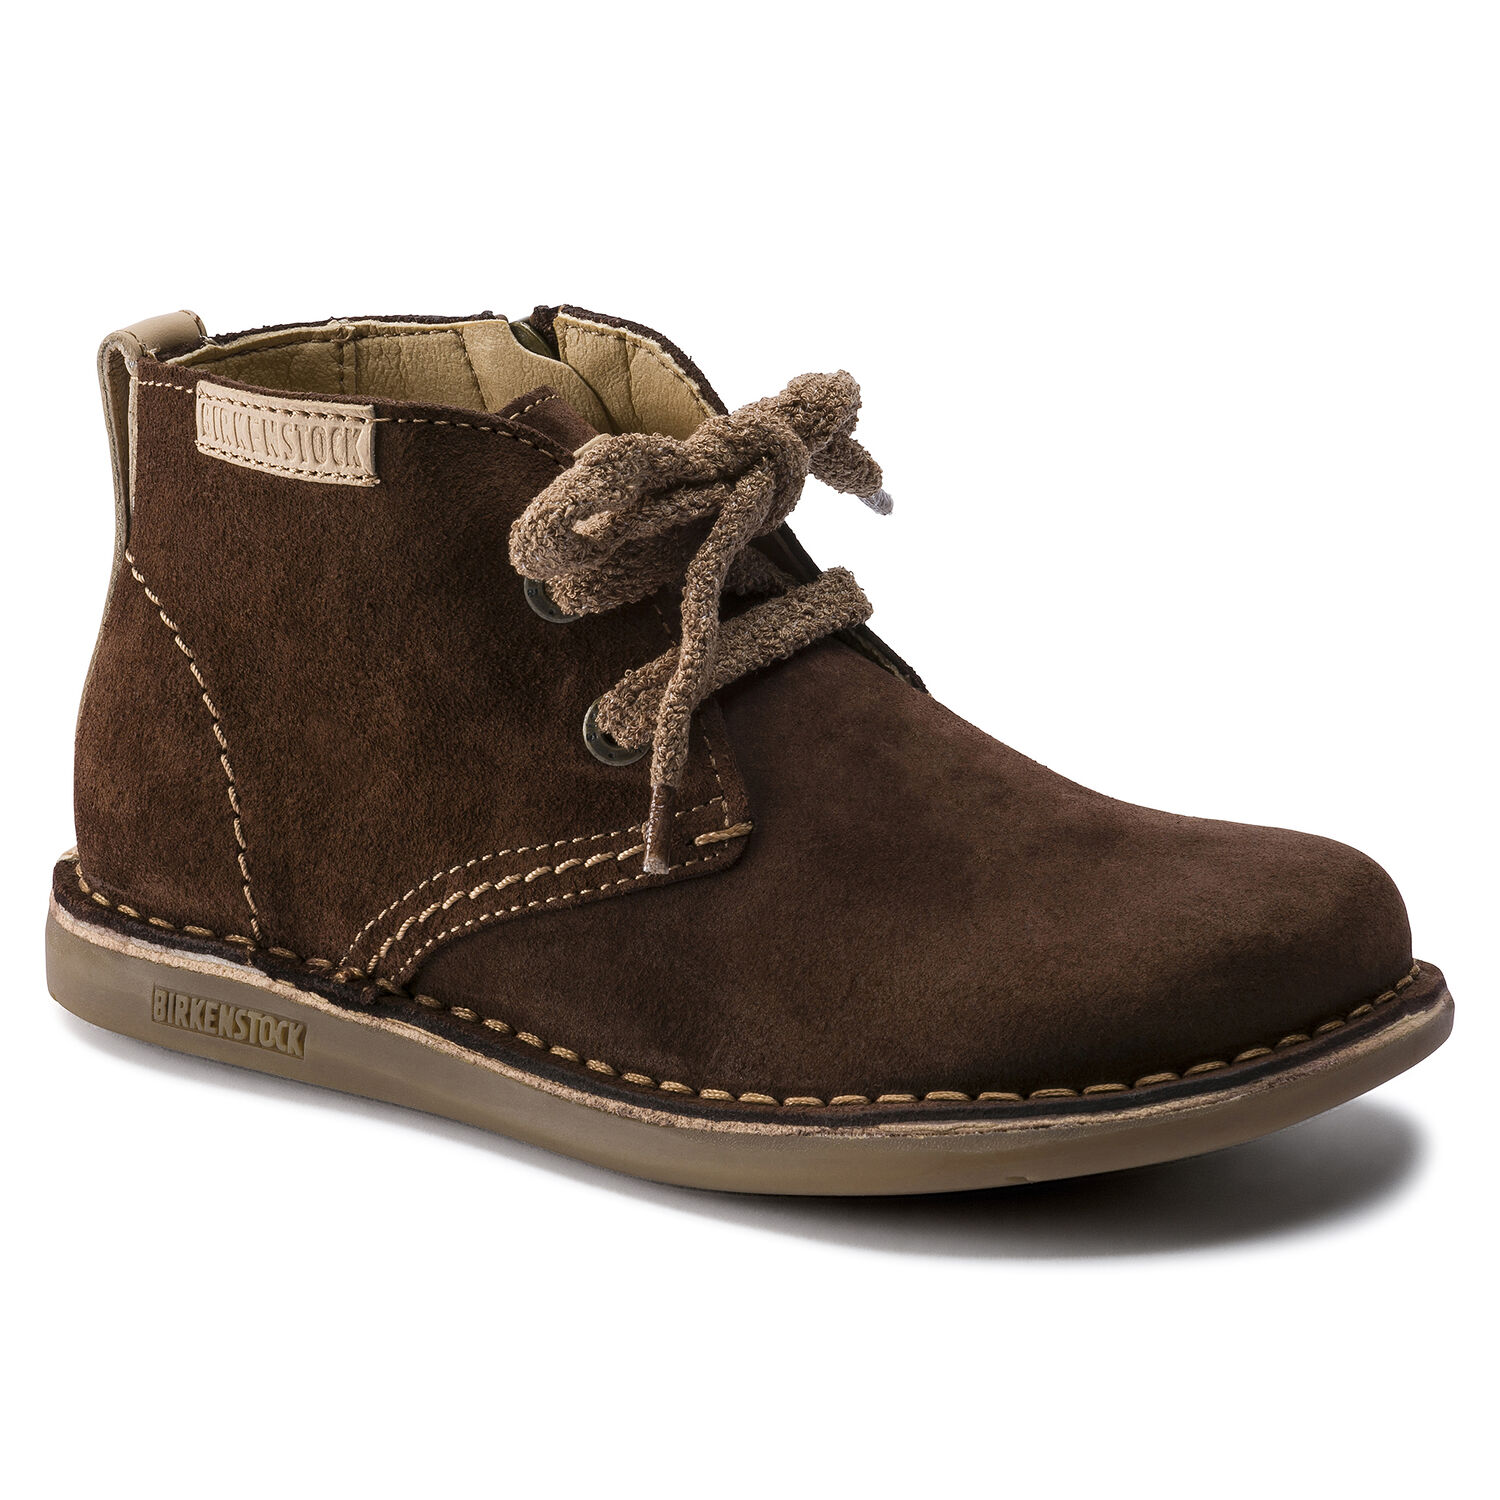 Ariano Suede Leather